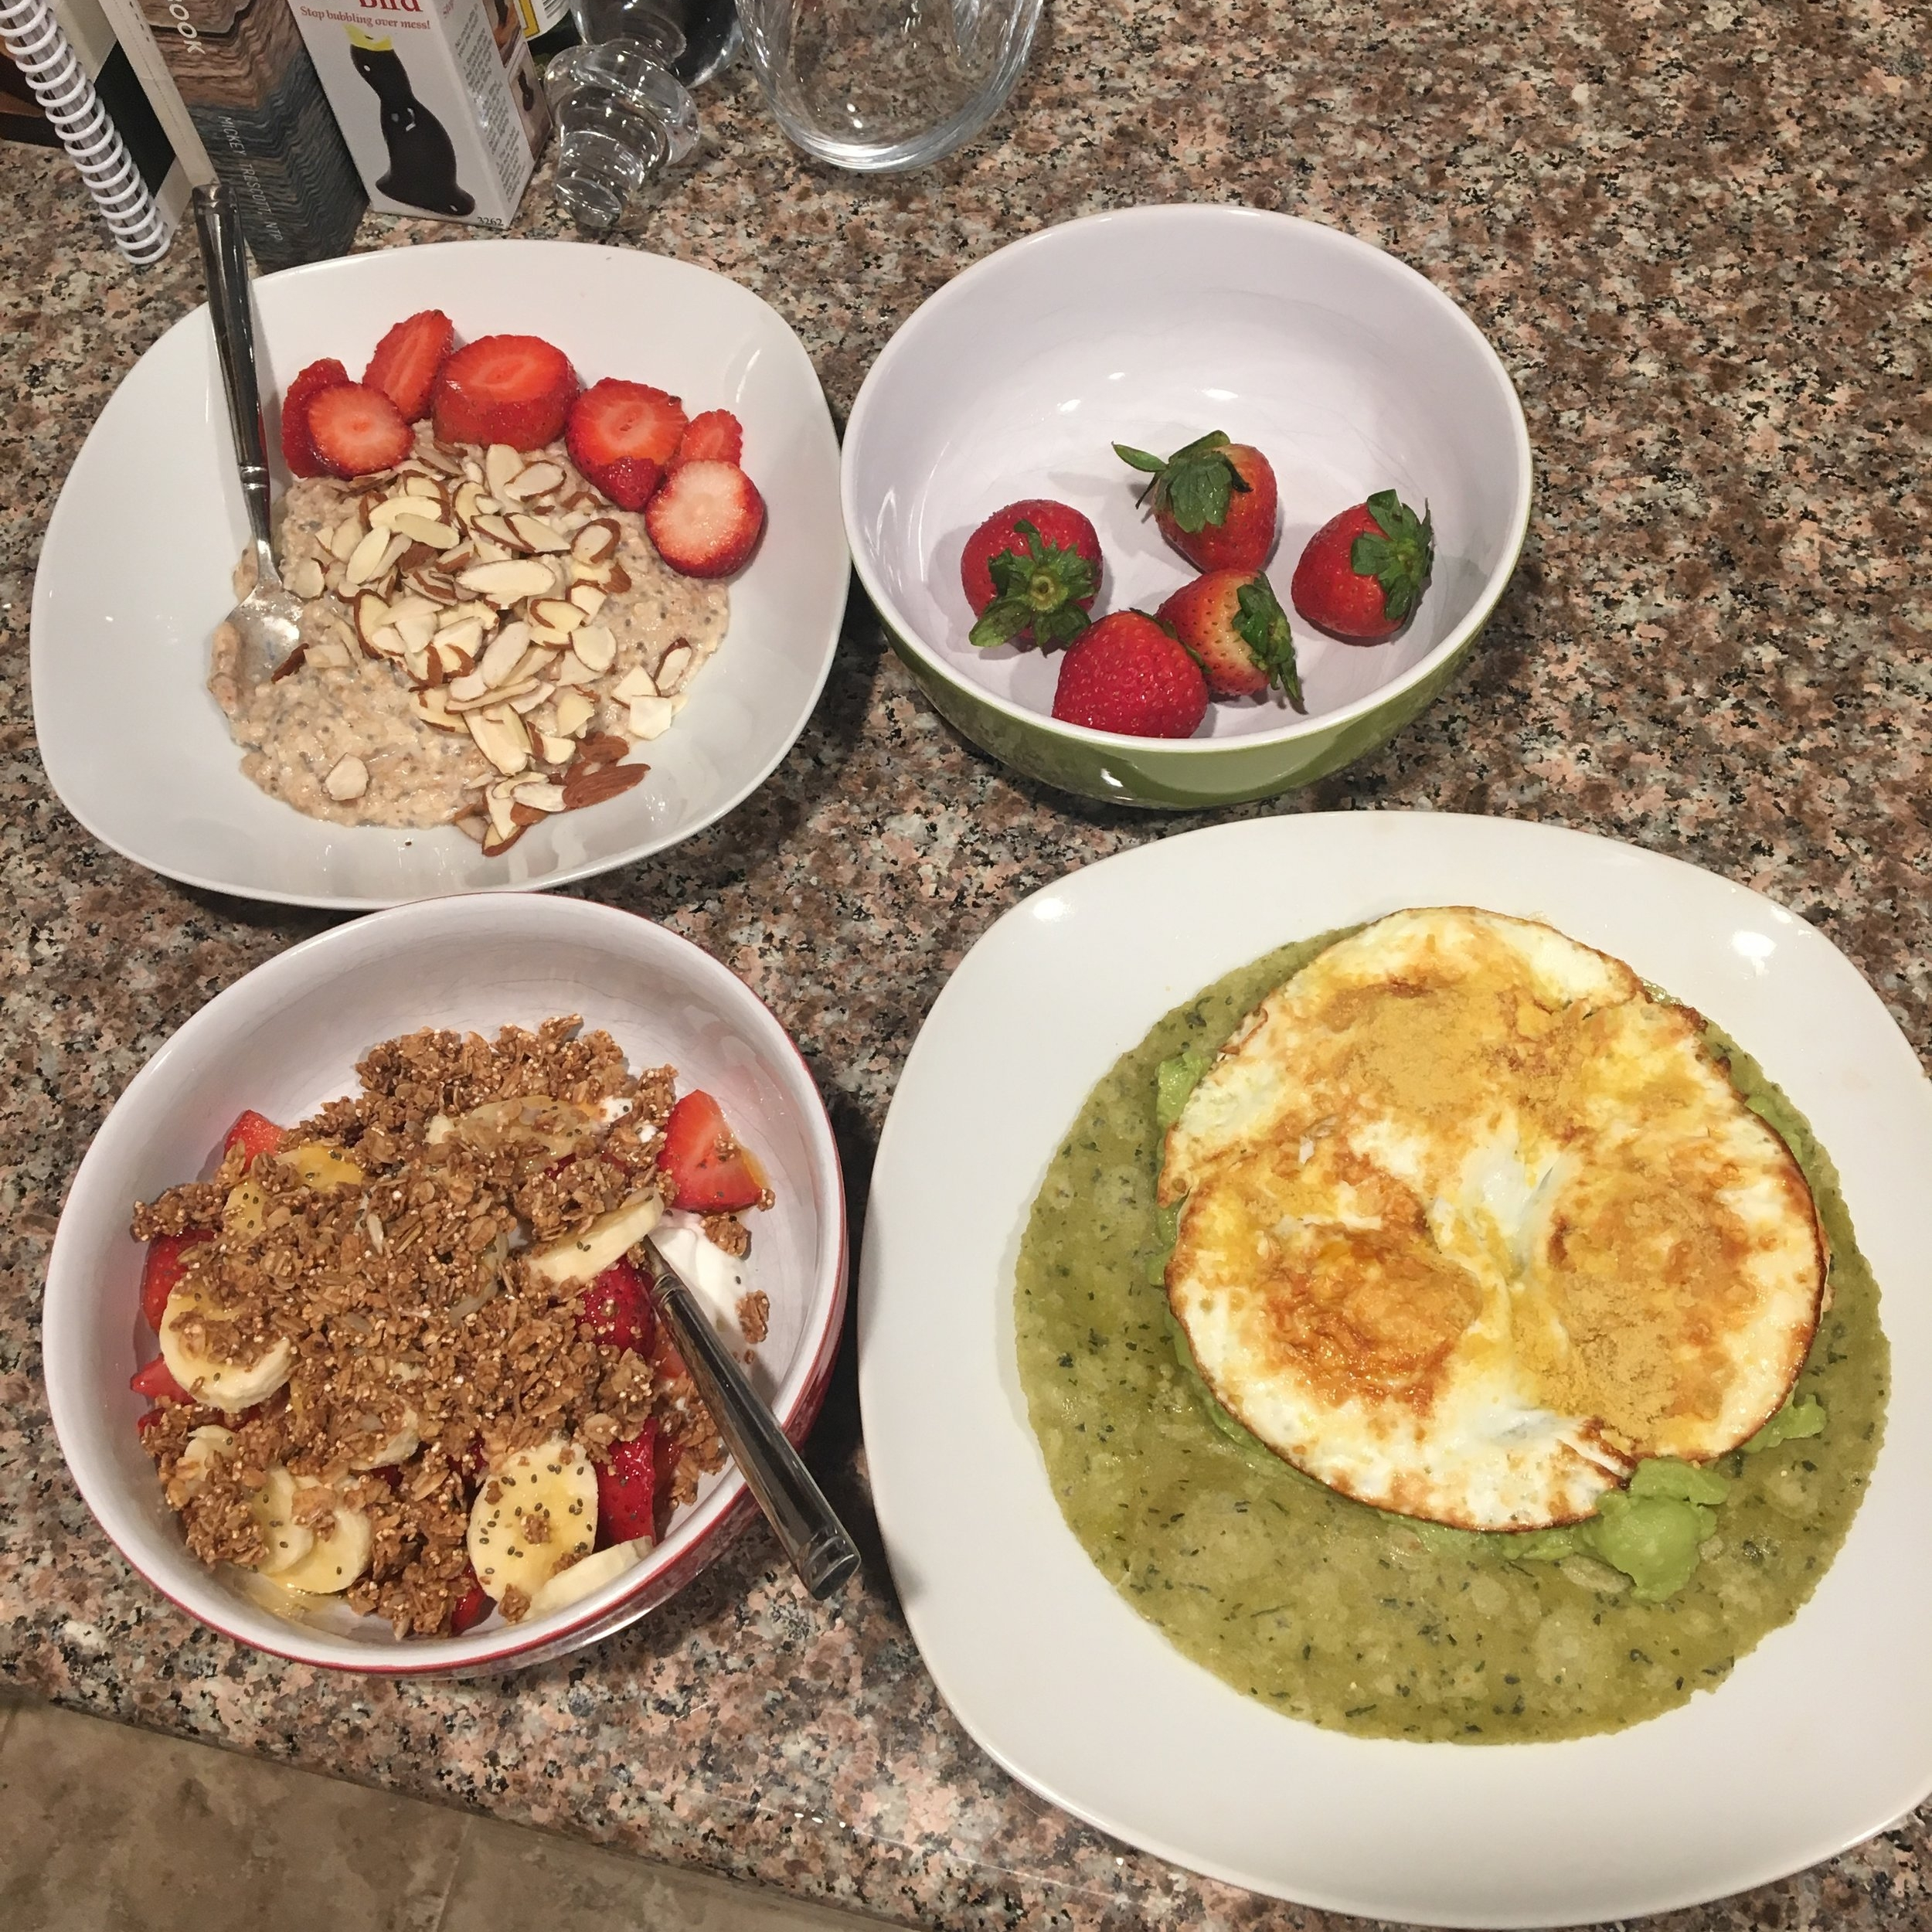 We made breakfast at home to save money and fuel up for an active day ahead. We made protein oats (top left), a greek yogurt parfait (bottom left) and fried eggs on a spinach tortilla with a side of strawberries.